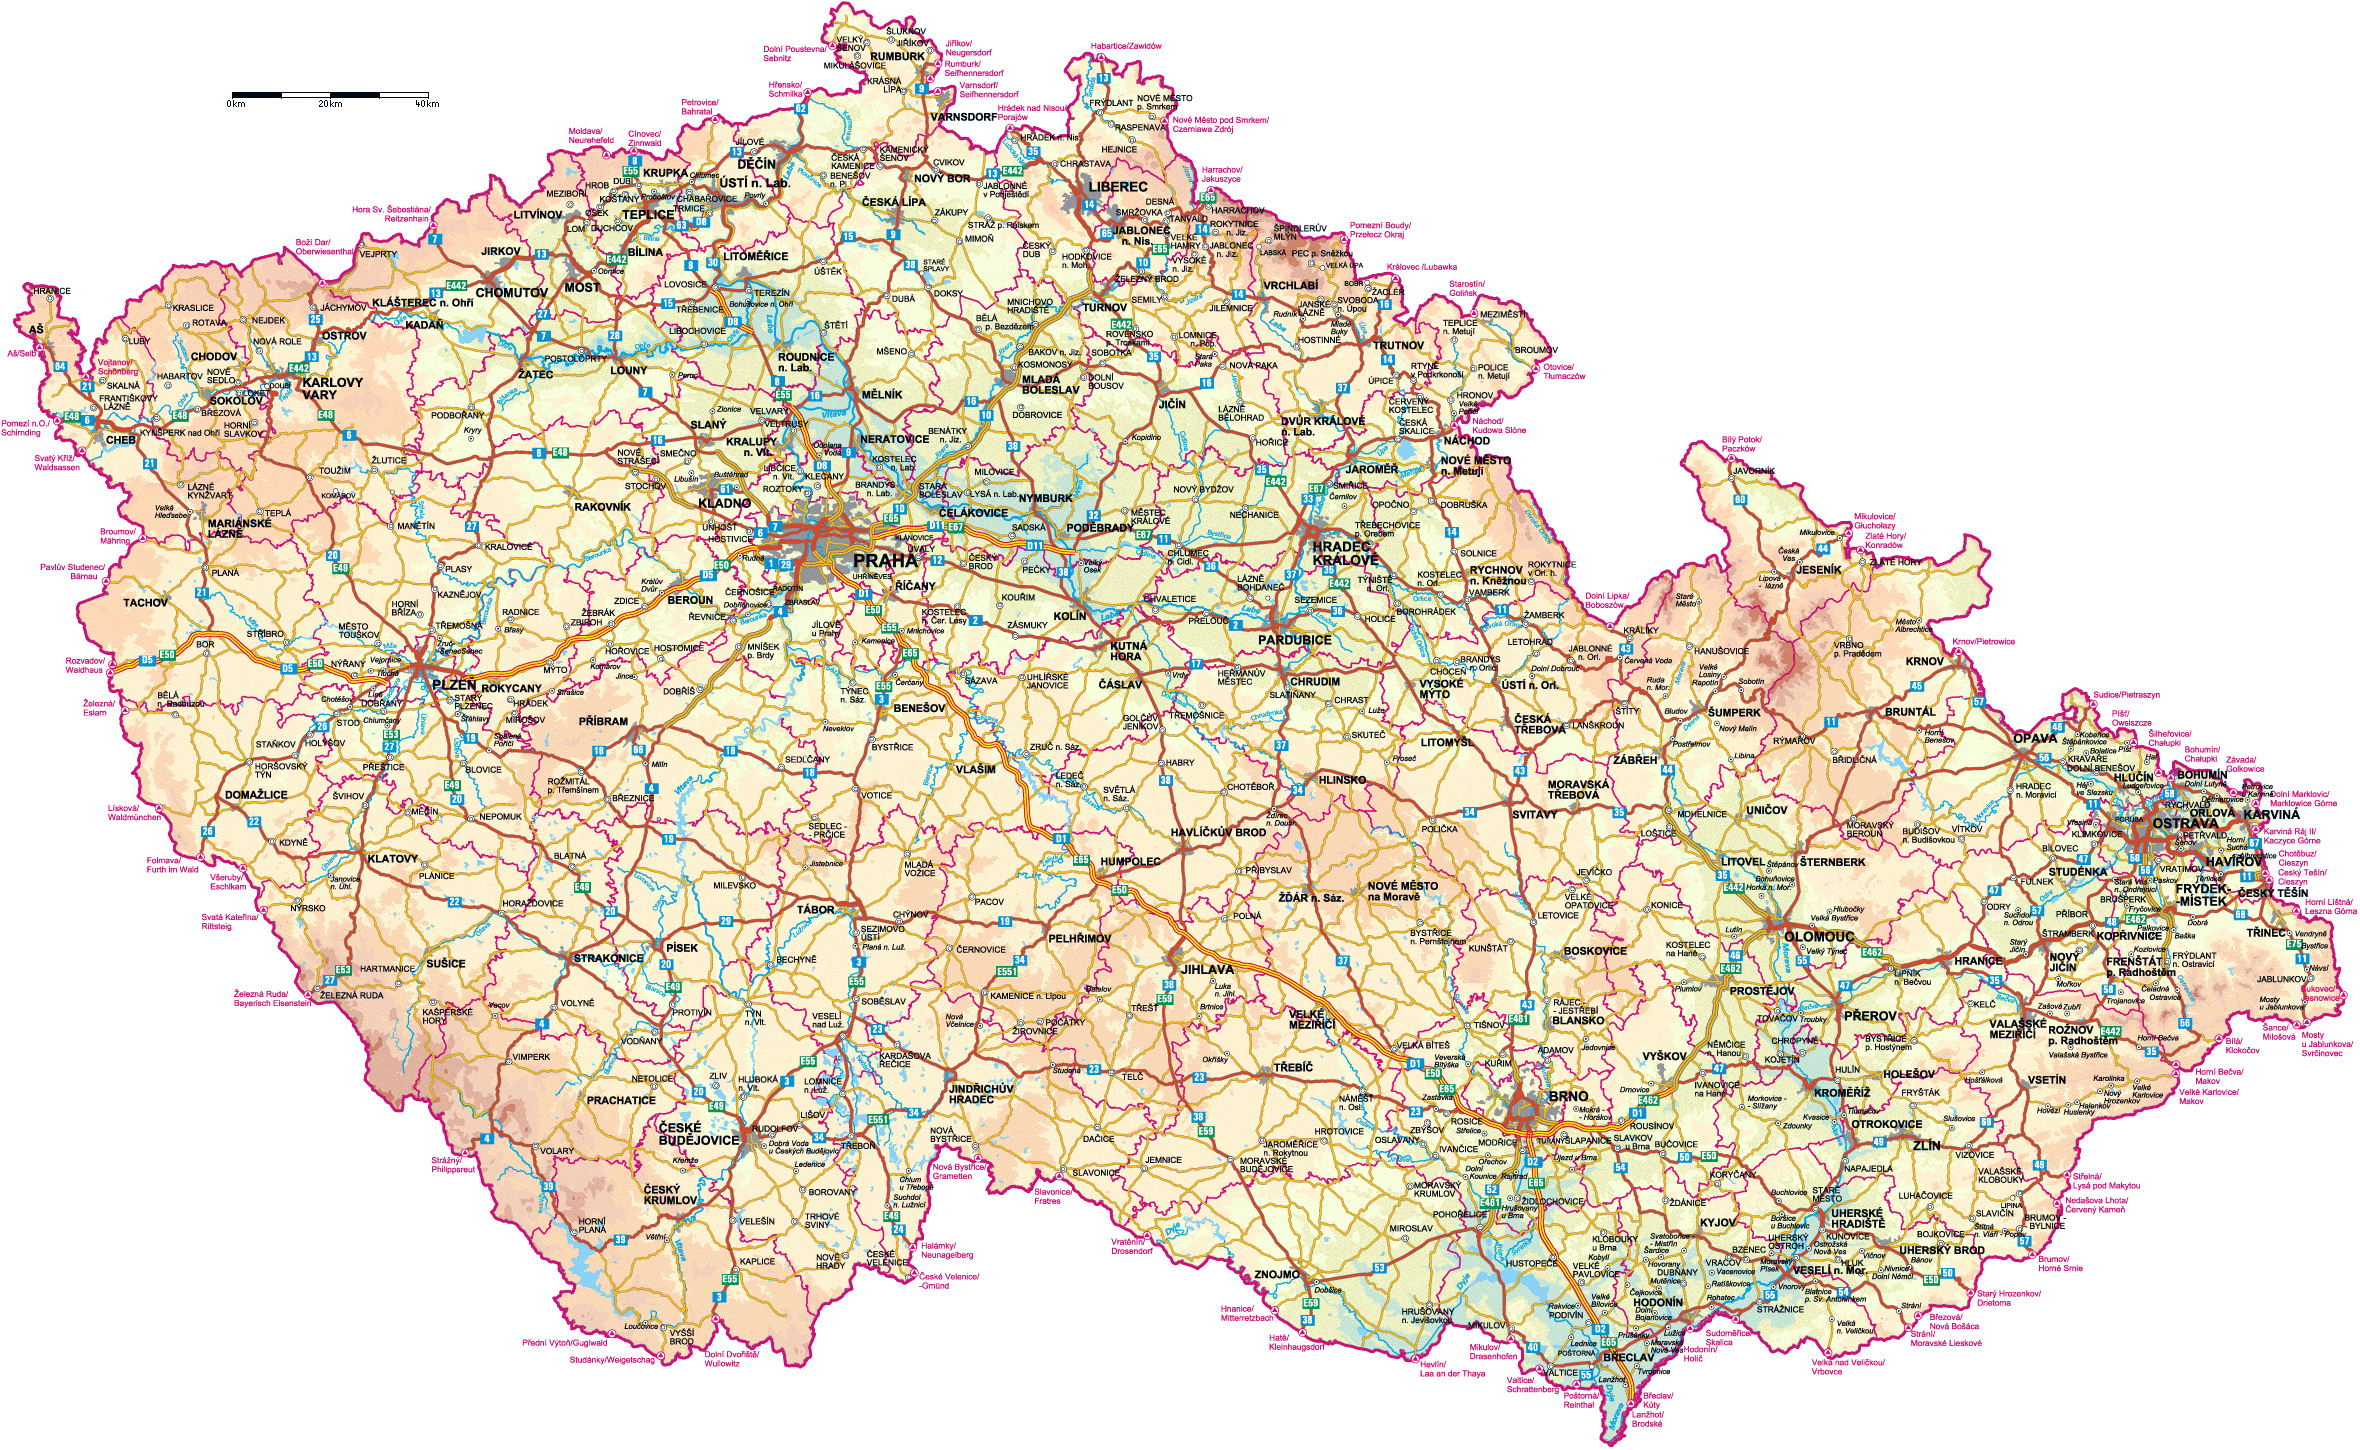 As Czech Republic  city photos gallery : ... .comLarge detailed road and physical map of Czech Republic with all